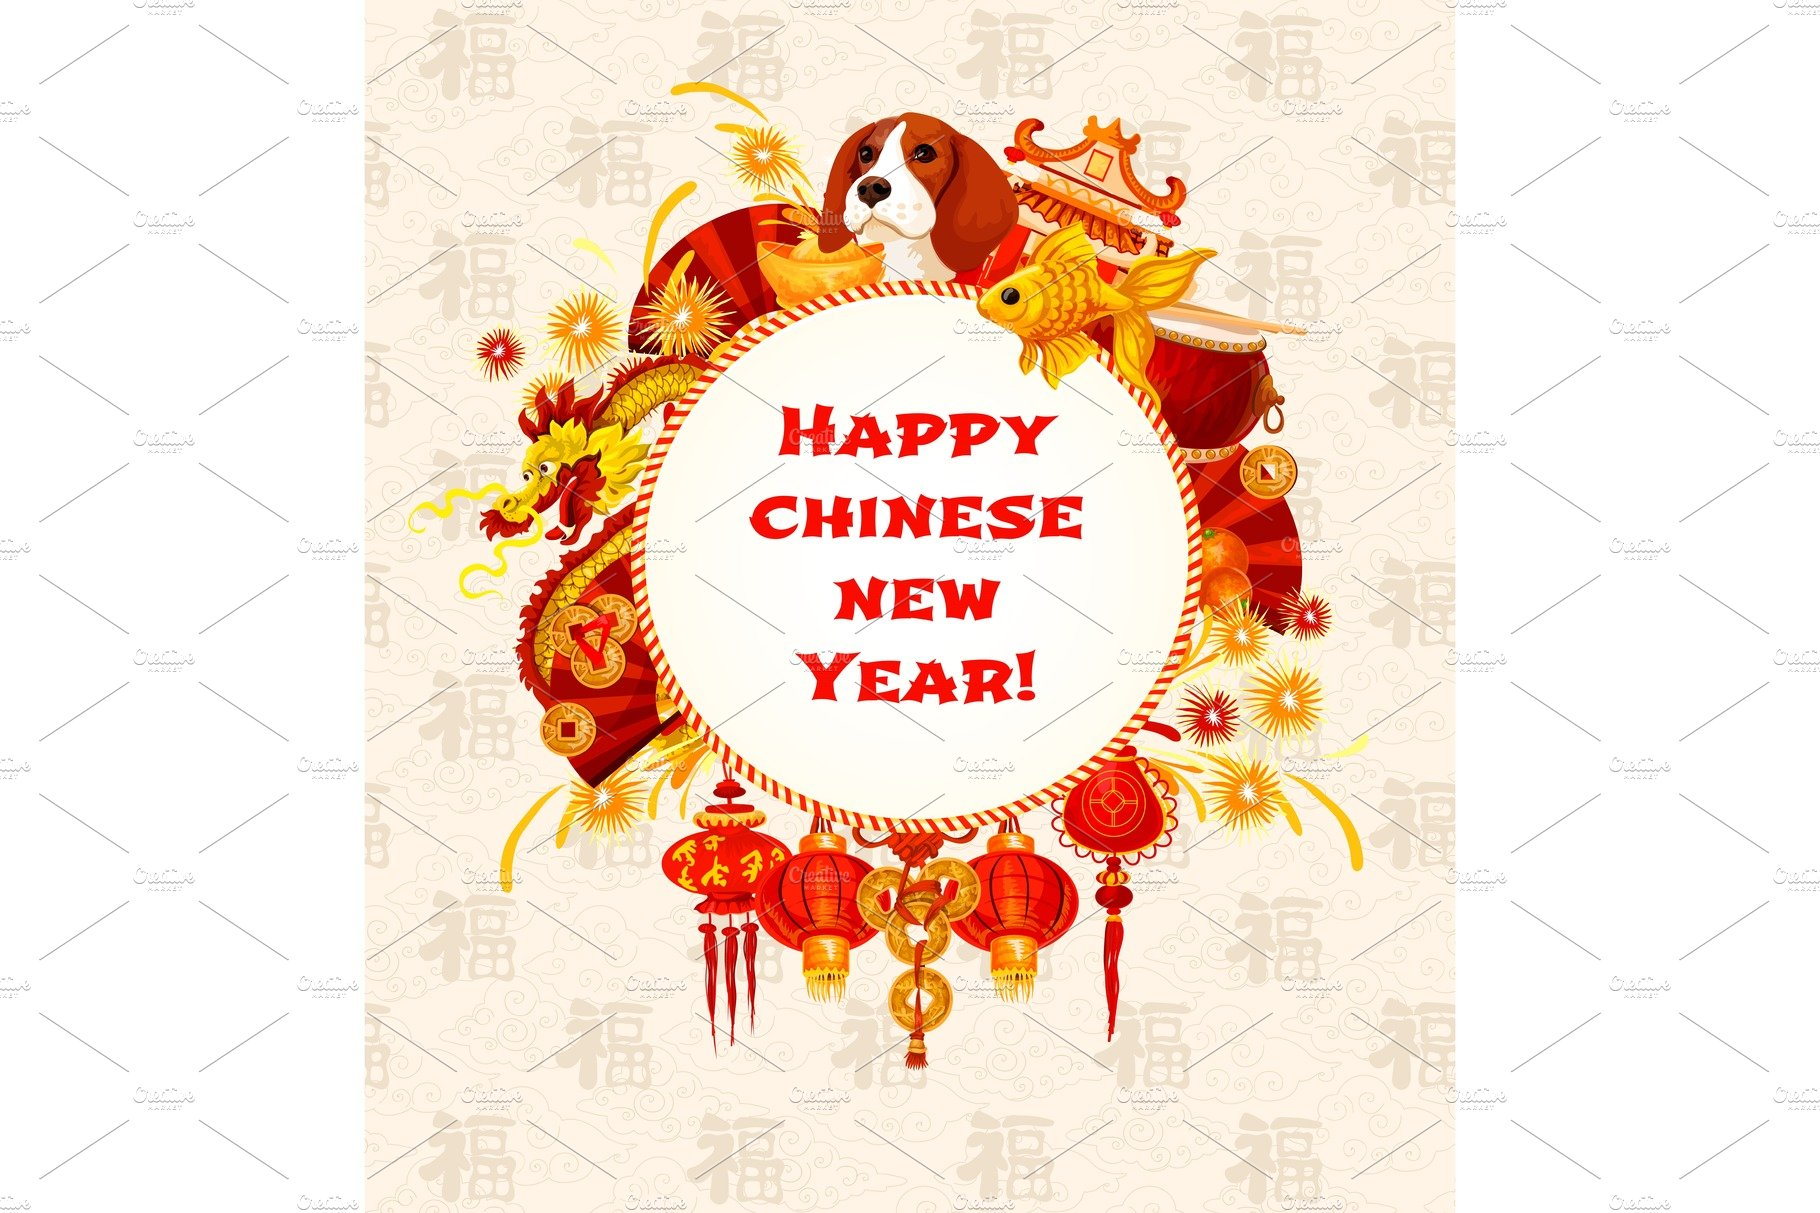 Chinese New Year Greeting Card With Festive Drum Illustrations